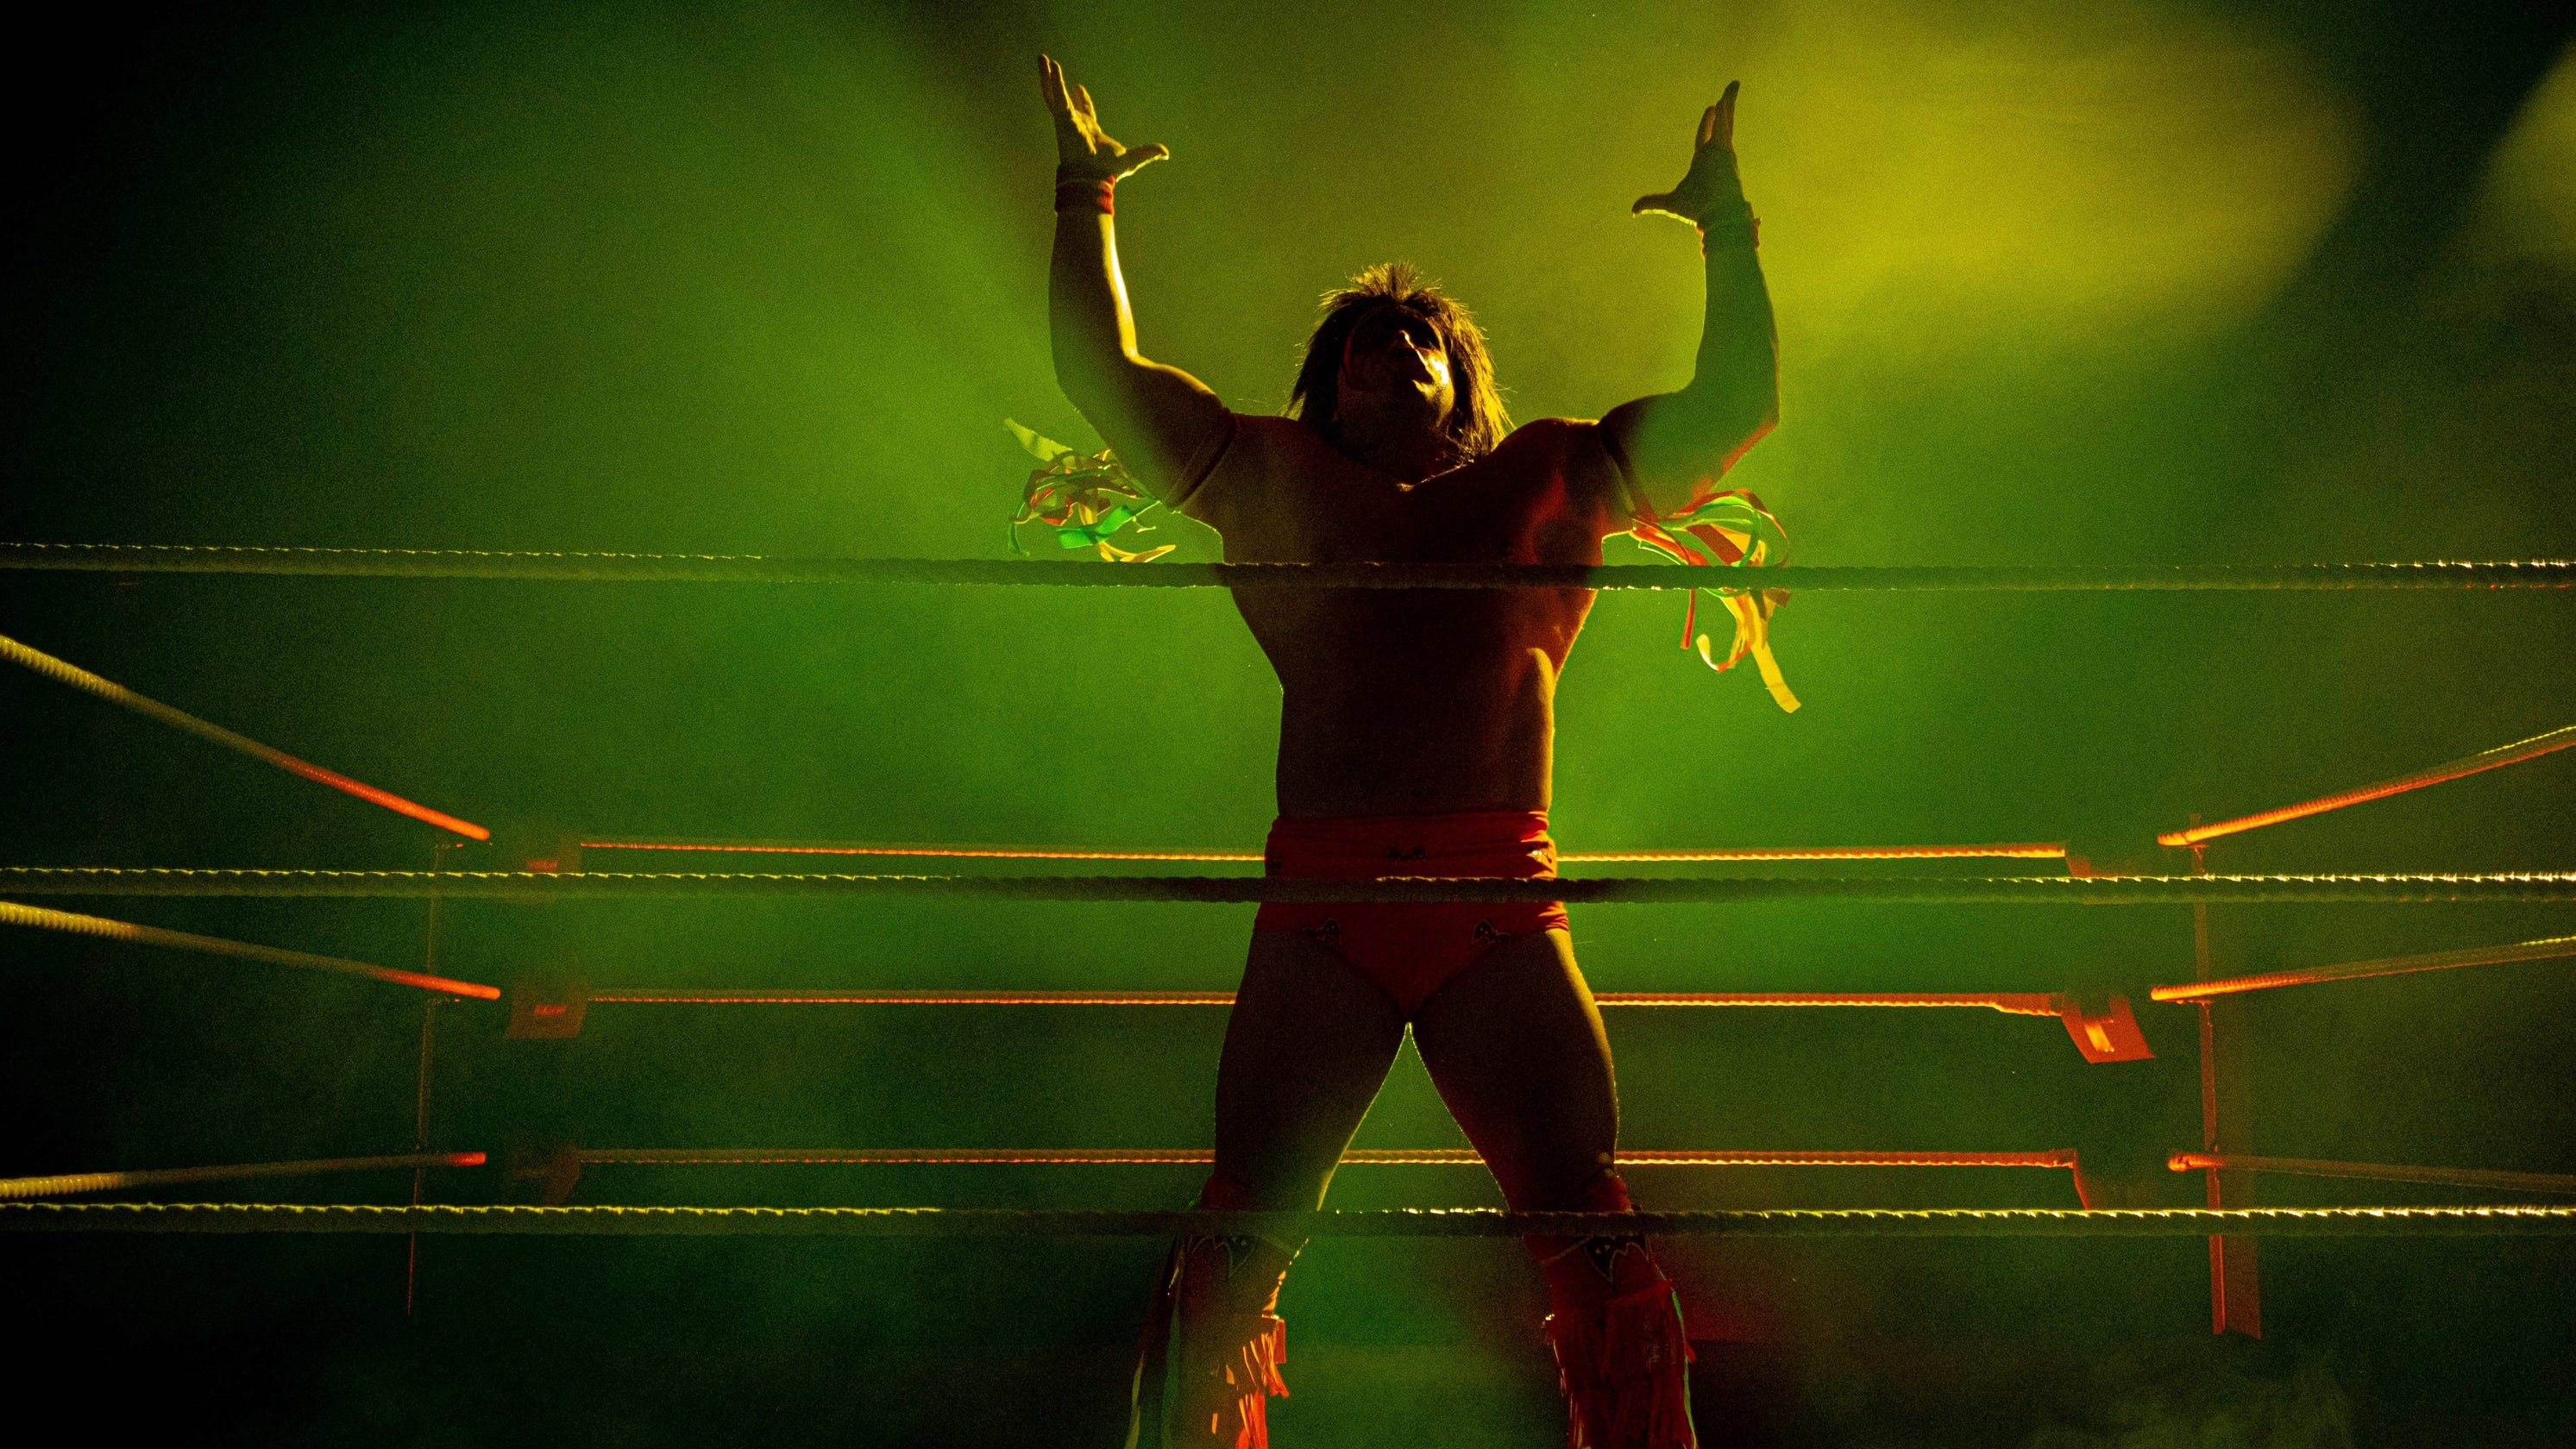 How 'Dark Side of the Ring' allowed professional wrestlers a glimpse into their tough world